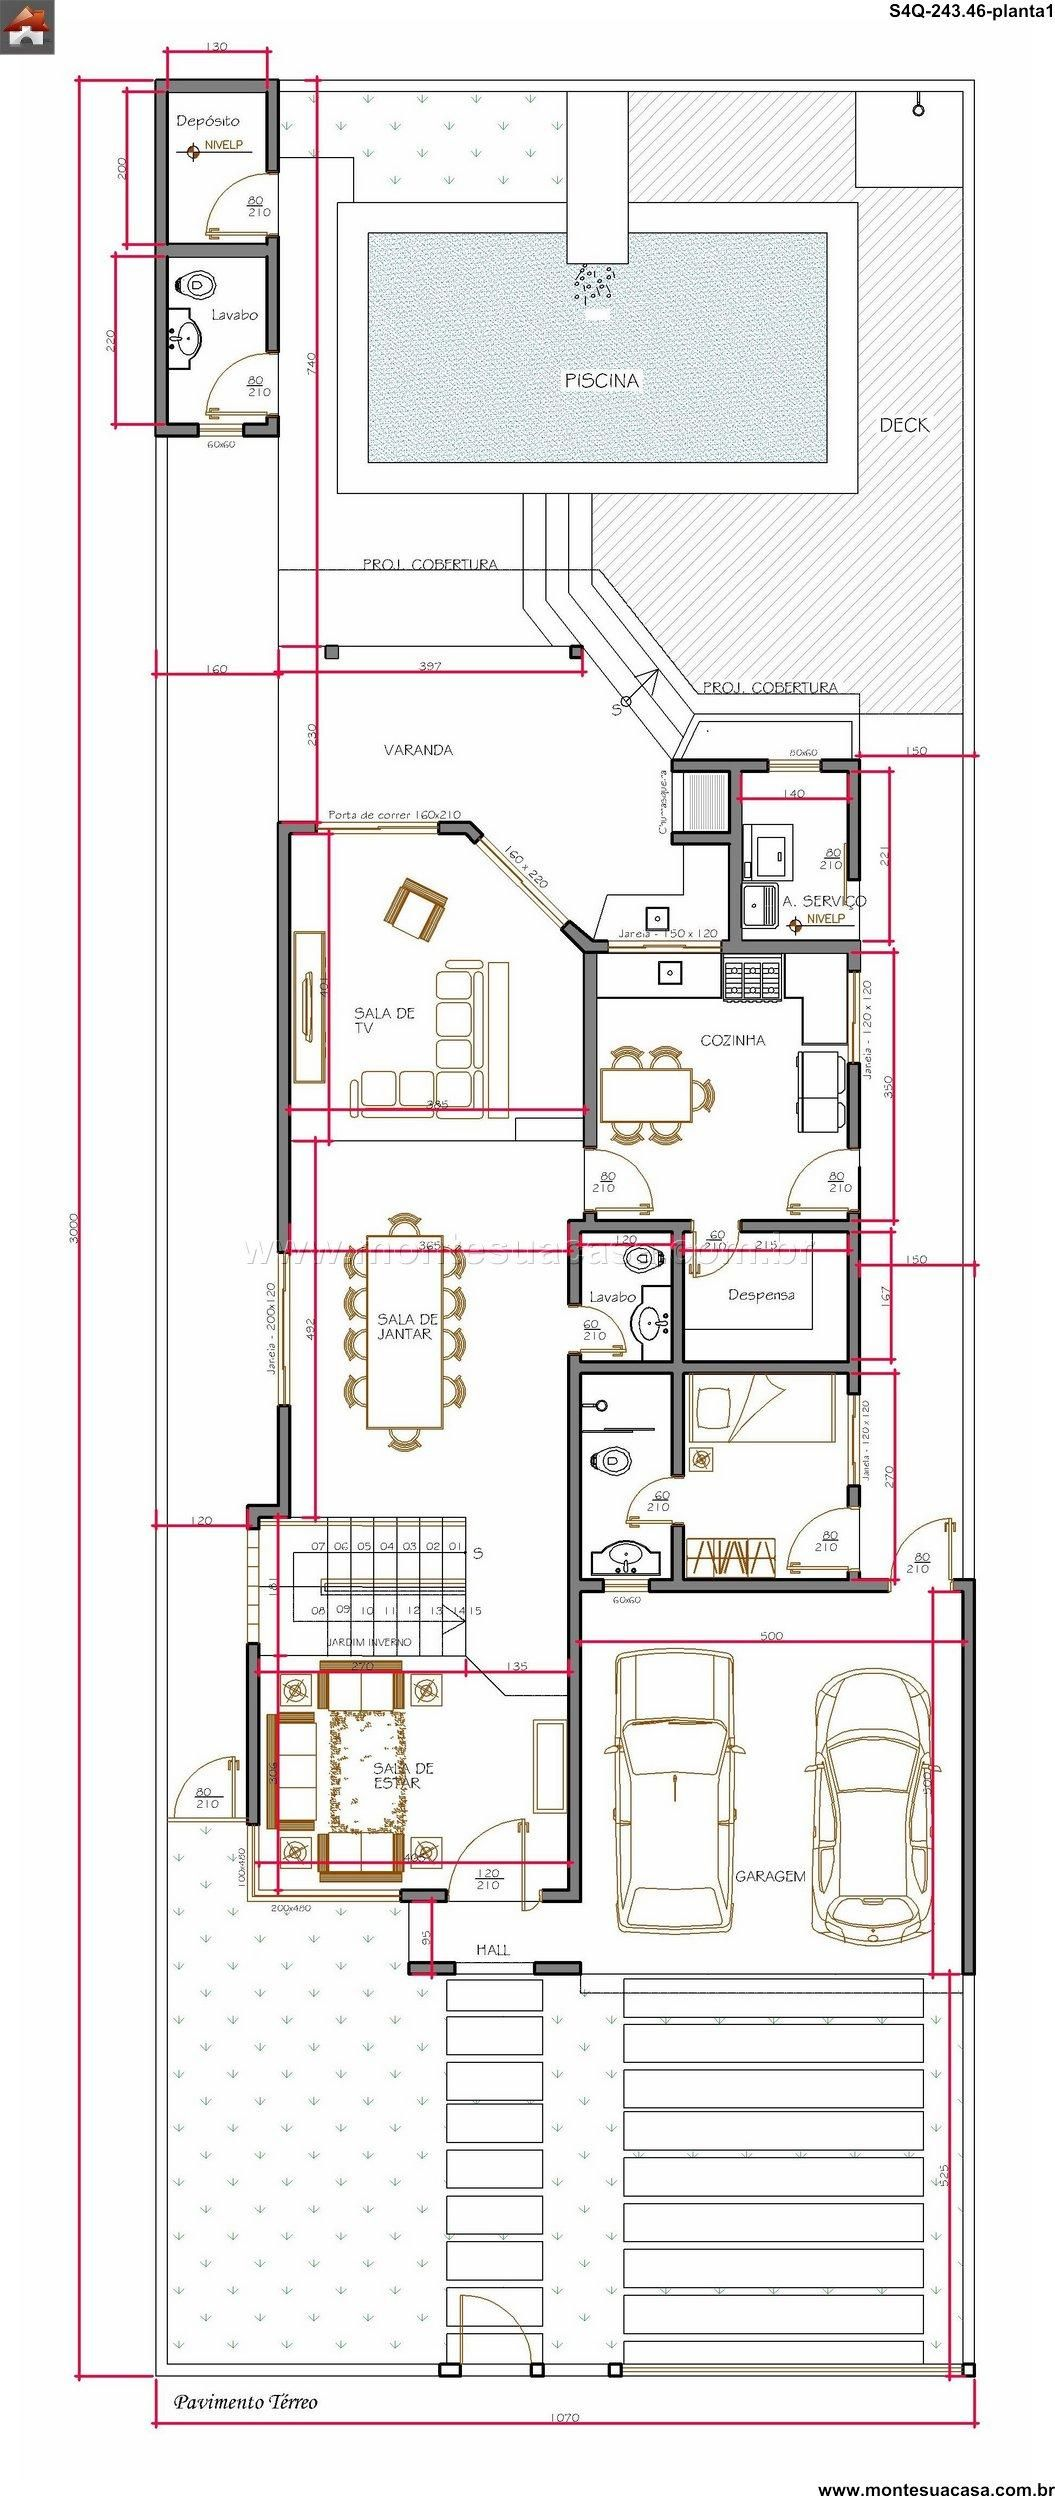 Small Bathroom Floor Plans Autocad: Pin By Jack DiCaprico On Realestate Recidence